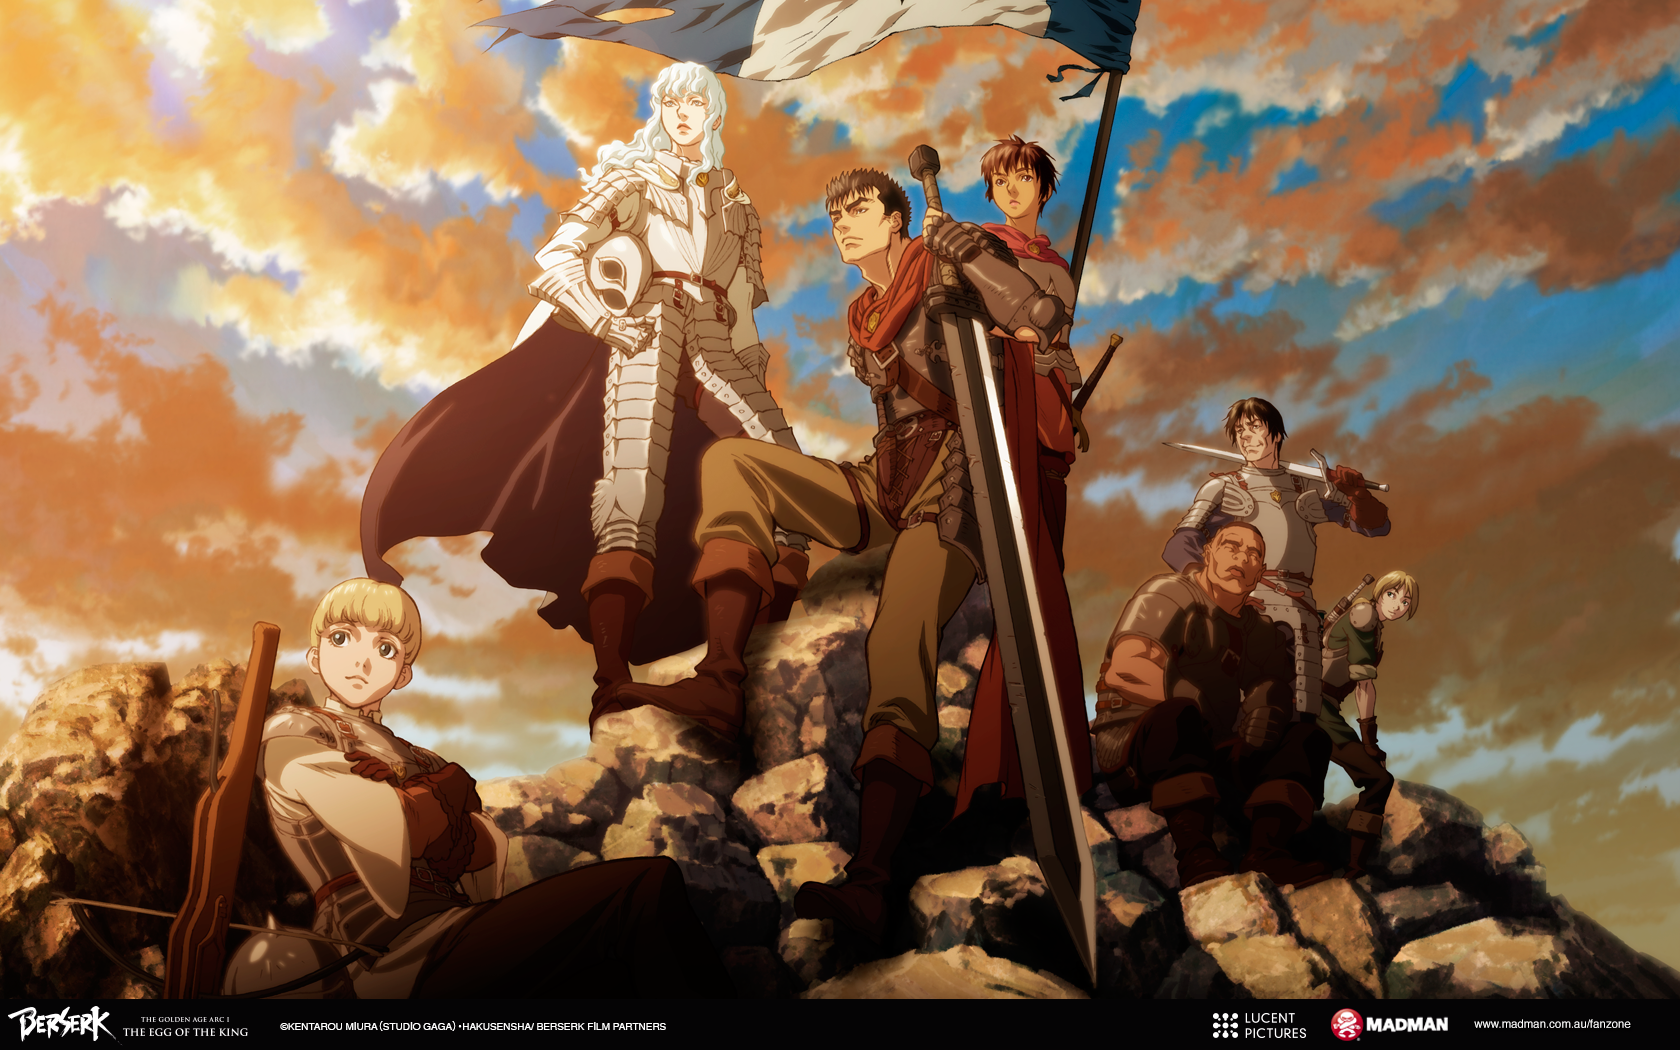 Berserk Movie 1 The Egg Of The King Wallpapers Madman Entertainment